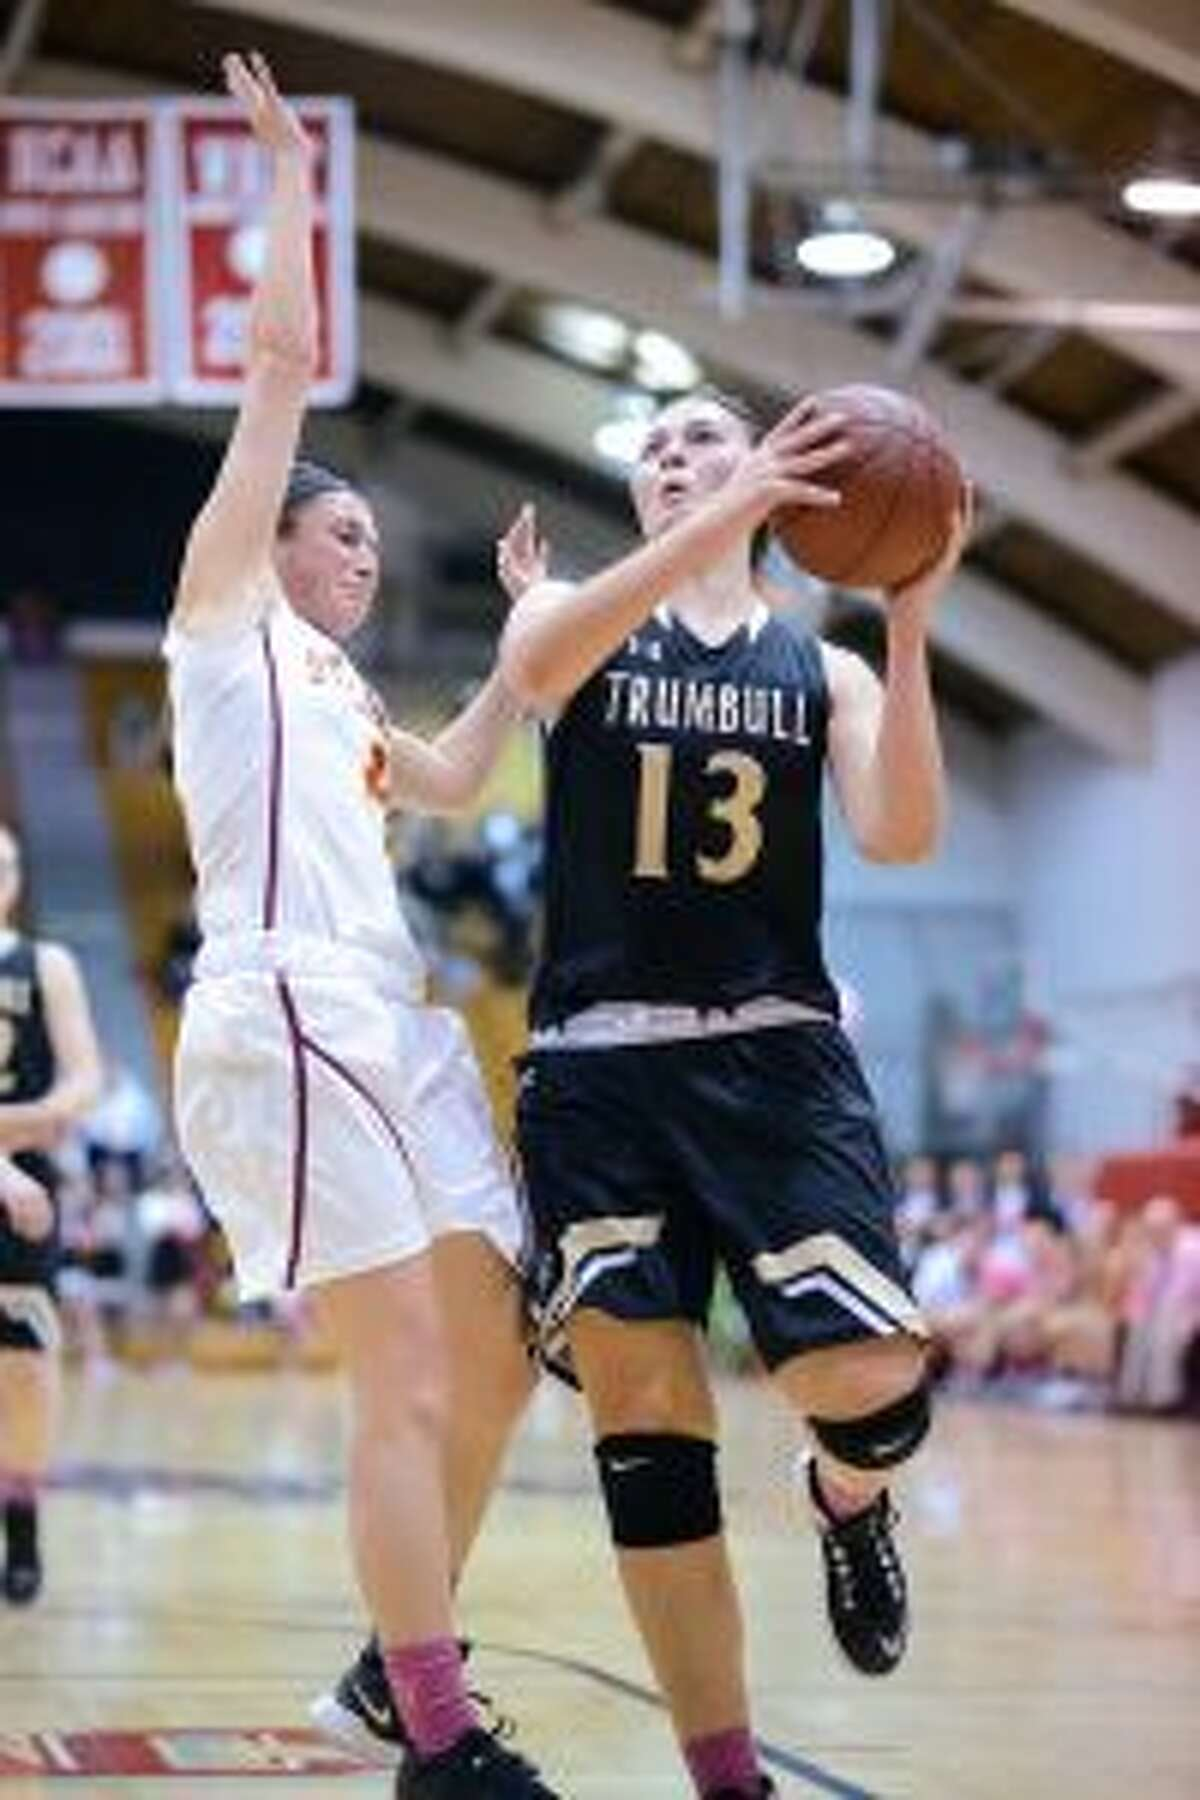 Claudia Tucci and the Trumbull High Eagles are guaranteed one of the top two seeds. - David G. Whitham photo